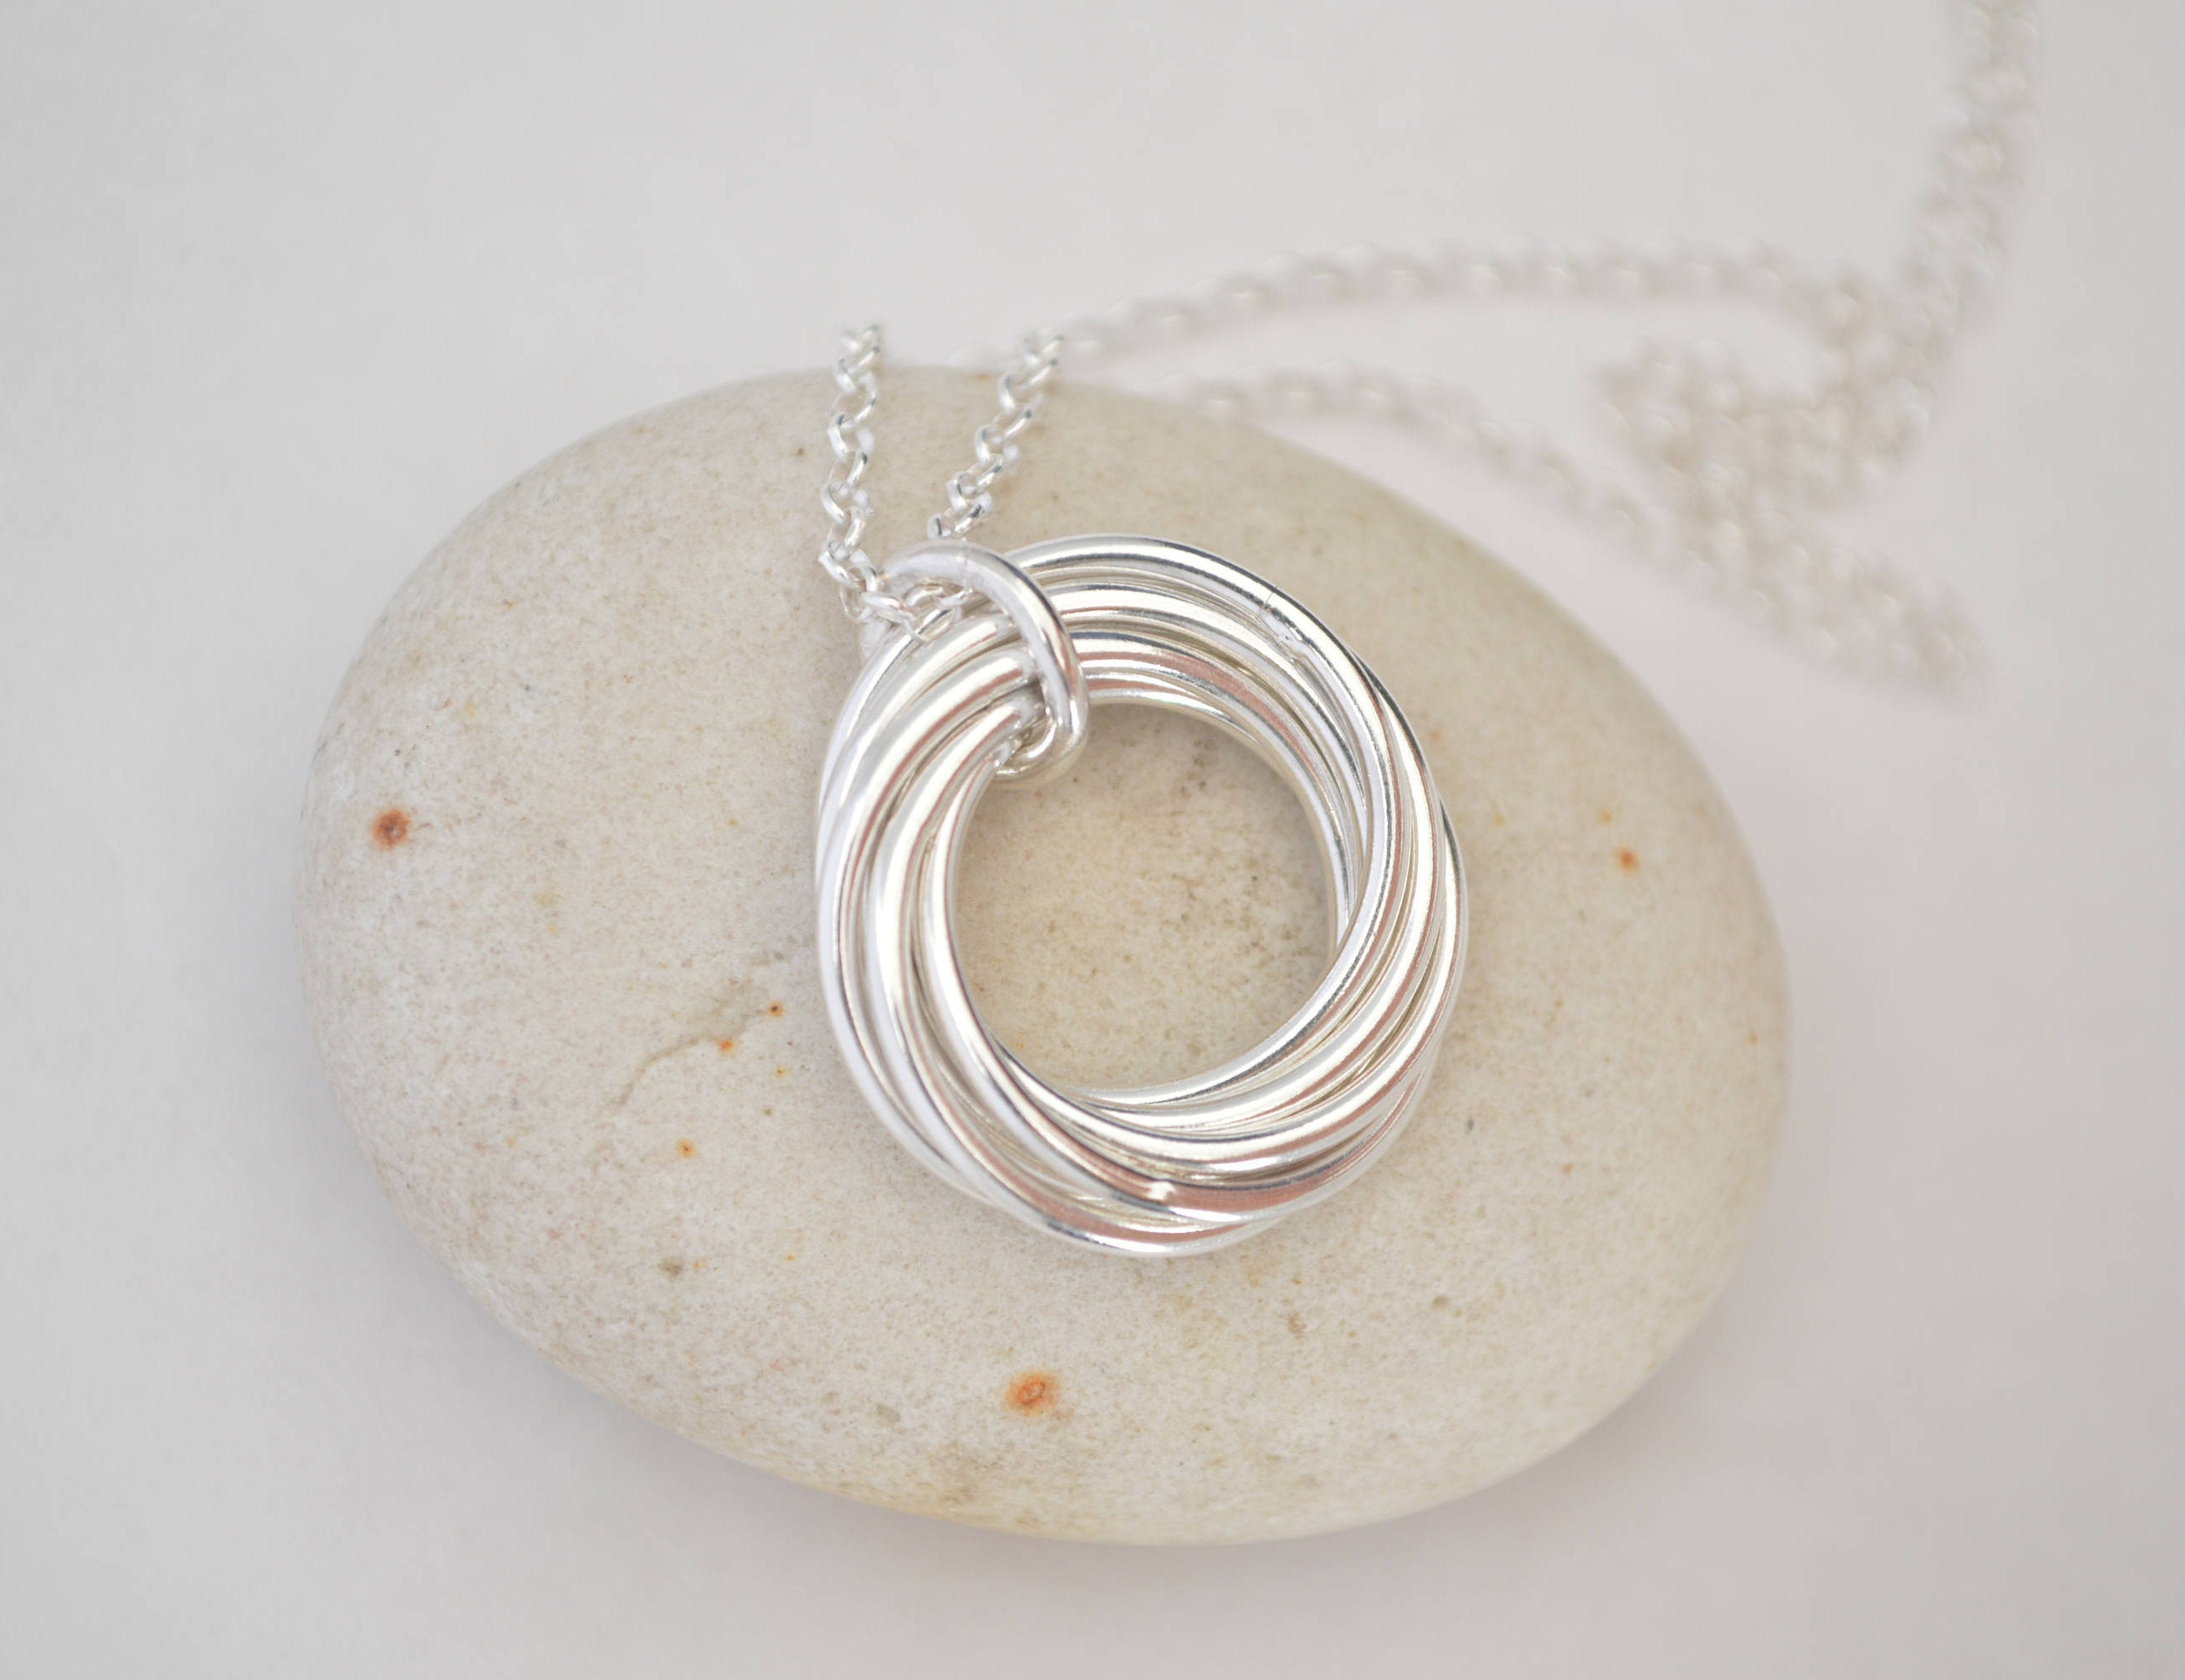 90th Birthday Gift For Mother And Grandmother Necklace Nana 9 Rings 9th Anniversary Gifts Mom